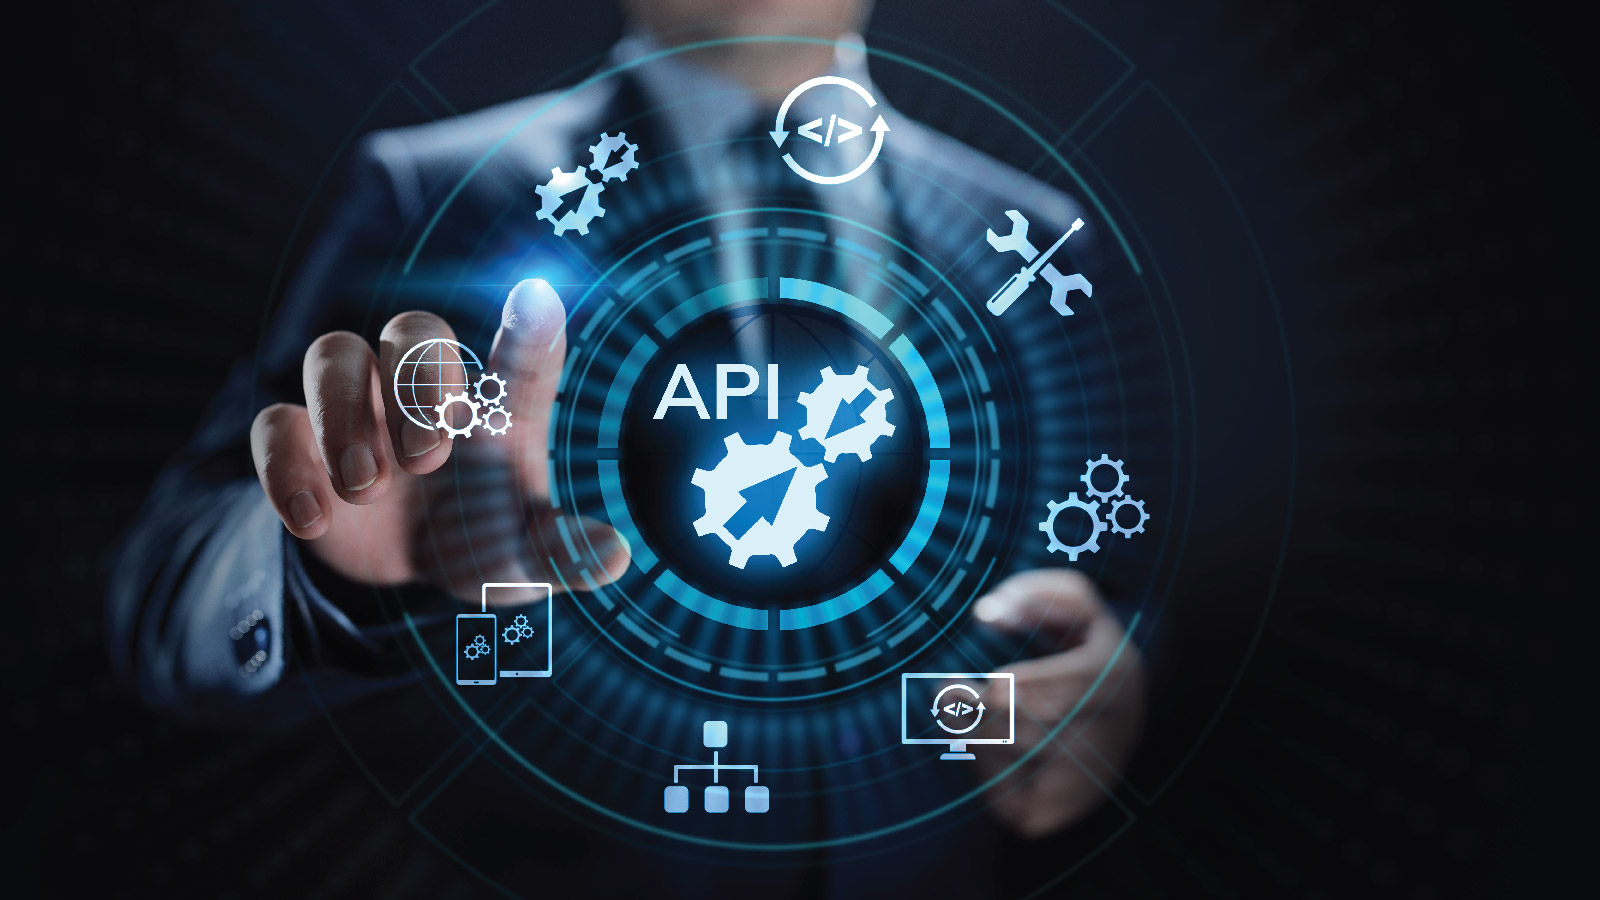 API, data, digital transformation, multi-cloud, cloud computing, 2020, research, report, enterprise, IoT, apps, application